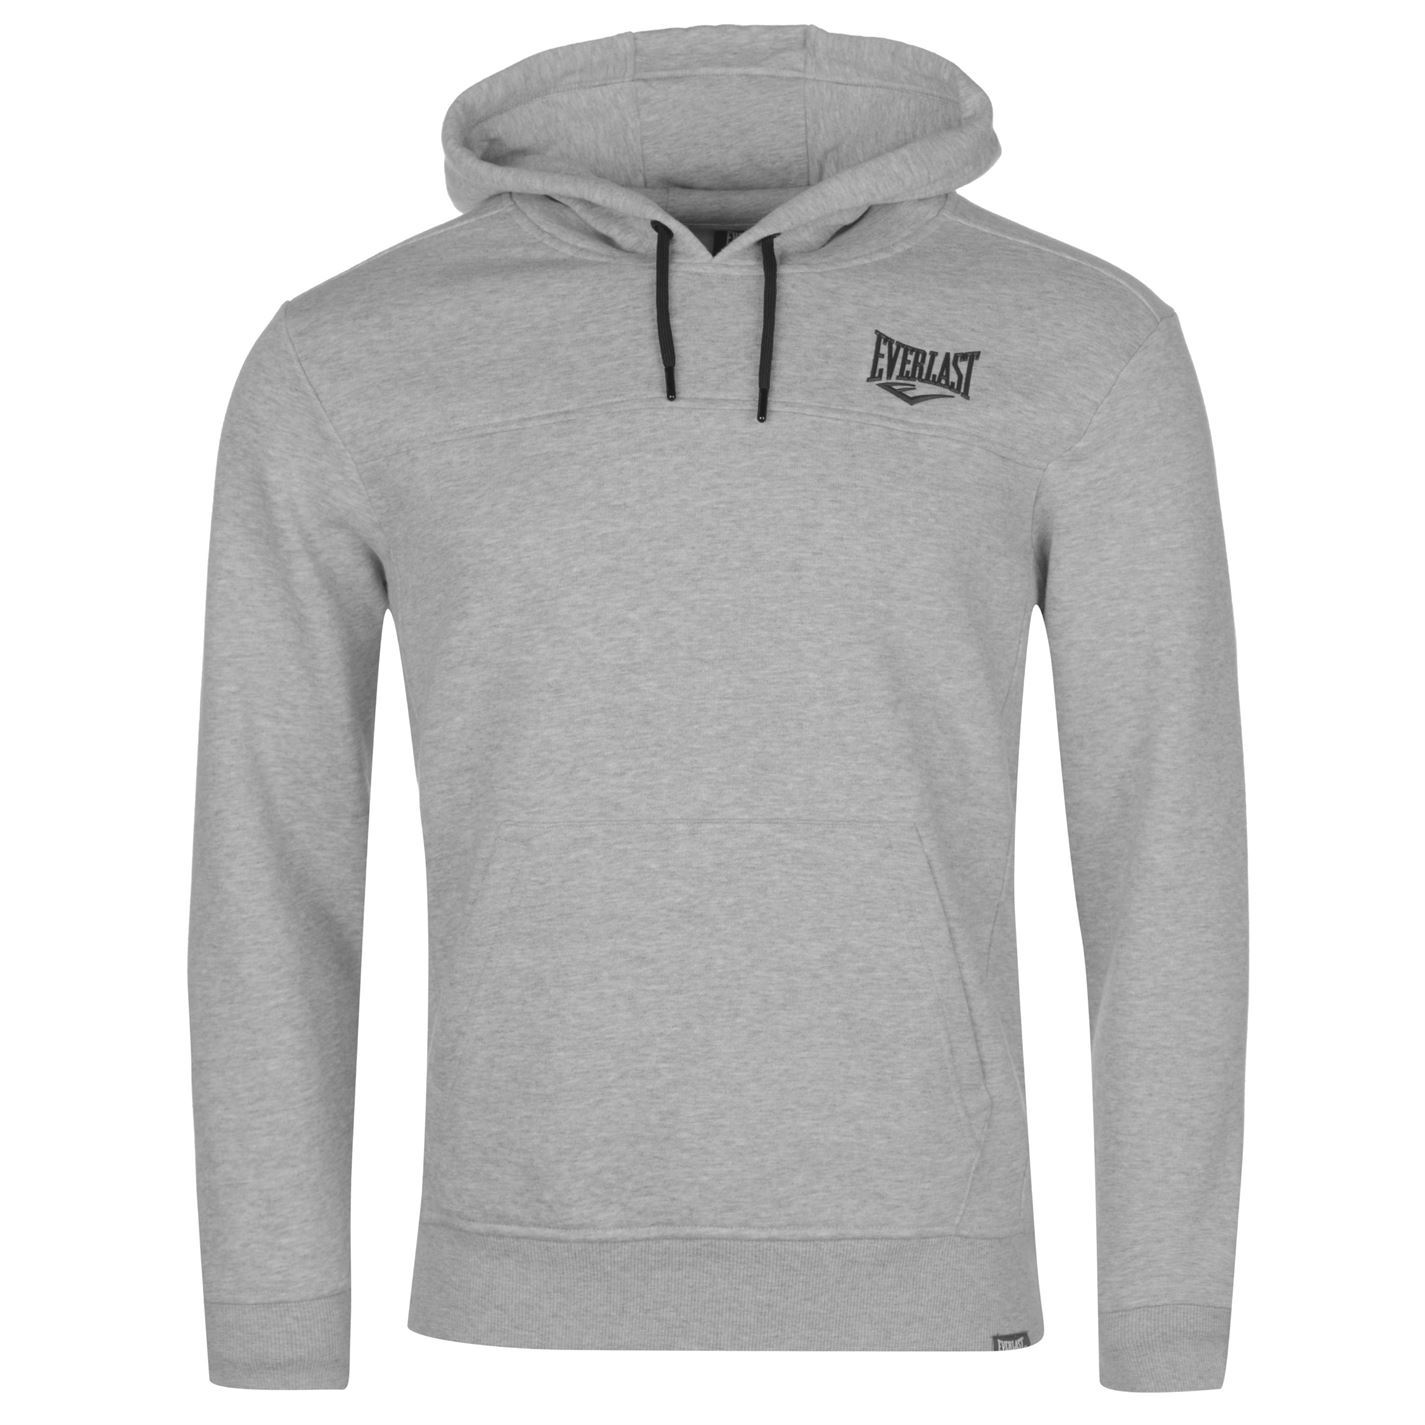 Everlast-Logo-Pullover-Hoody-Mens-OTH-Hoodie-Hooded-Top-Sweatshirt-Sweater thumbnail 19